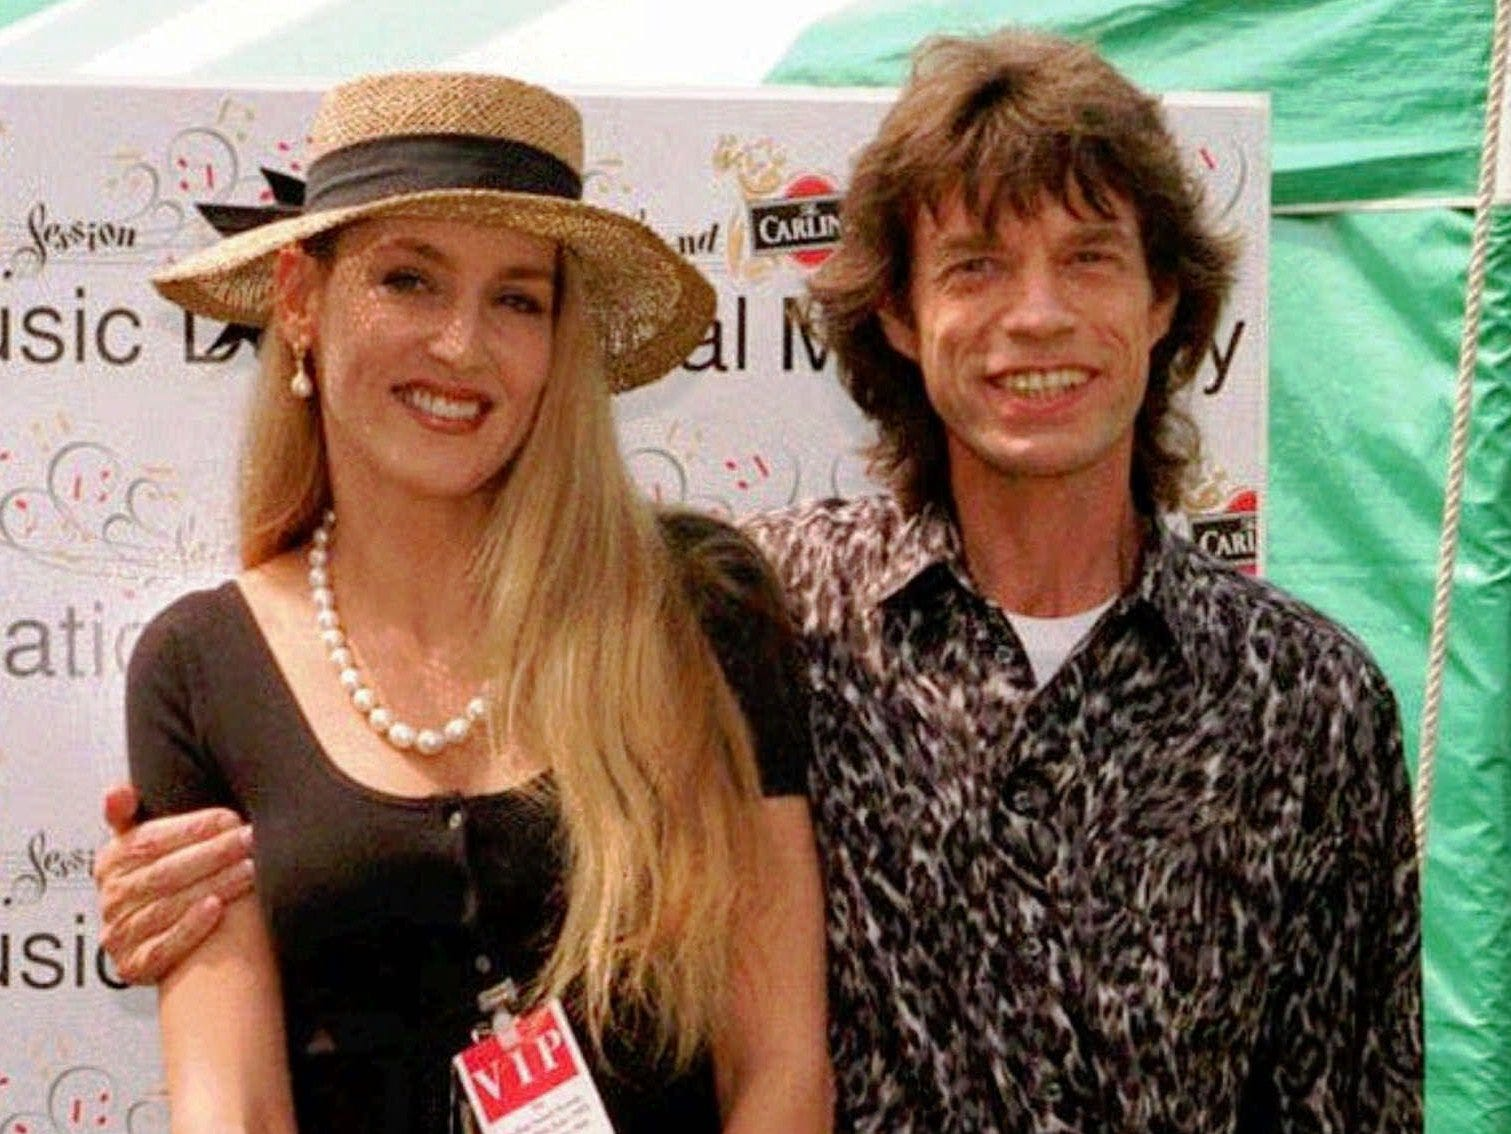 FILE--Rolling Stone singer Mick Jagger and his wife Jerry Hall are shown in this June 28, 1992 file photo.  Jagger and Hall have split again and may divorce, British tabloids agreed Sunday, Nov. 22, 1998.  But the tabs are divided over whether the trouble this time is over Jagger's other women or his anger that their willowy, 14-year-old daughter, Elizabeth, is already following in her mother's footsteps on the catwalk. Texan-born Hall has flown to New York, taking the couple's youngest child, 11-month-old son Gabriel, and plans to seek a divorce settlement through lawyers in the United States, according to the reports. (AP Photo/file) --UNITED KINGDOM OUT-- ORG XMIT: NY44